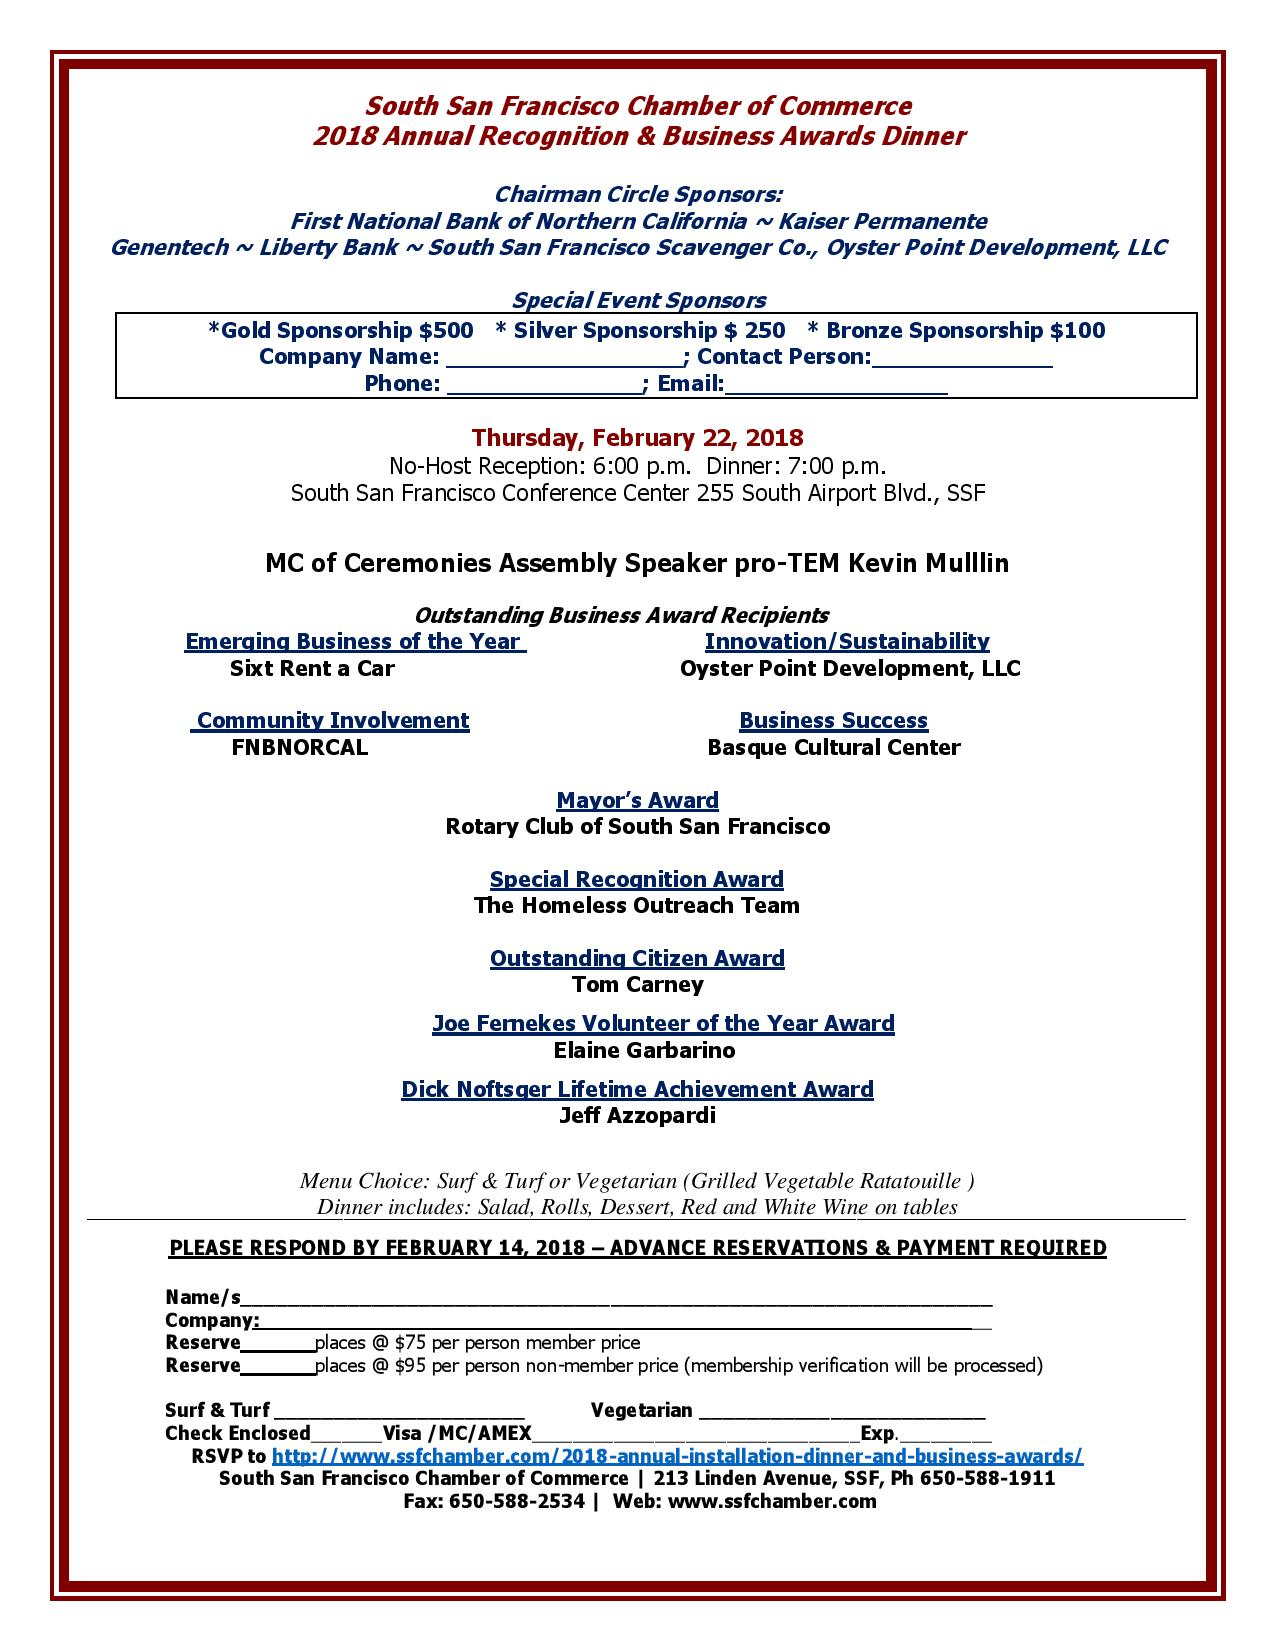 Public Invited to SSF Chamber of Commerce 2018 Annual Recognition & Business Awards Dinner February 22nd